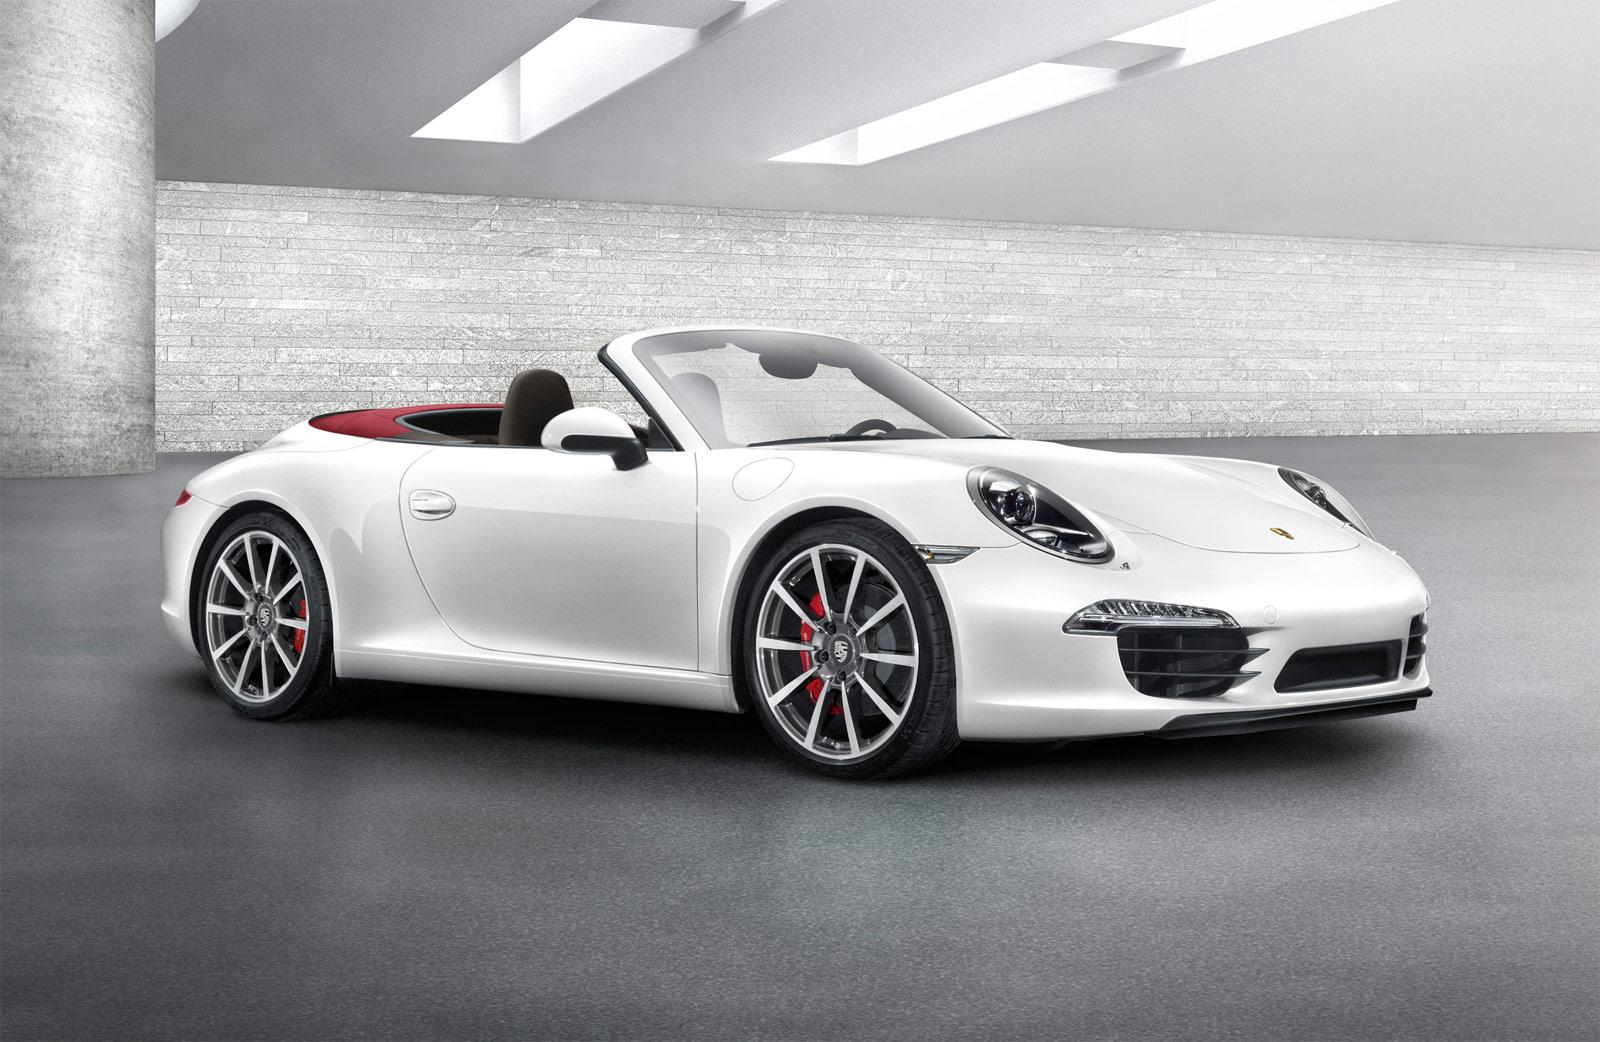 White Porsche 911 Carrera Cabriolet Car Wallpapers Wallpaper Cave